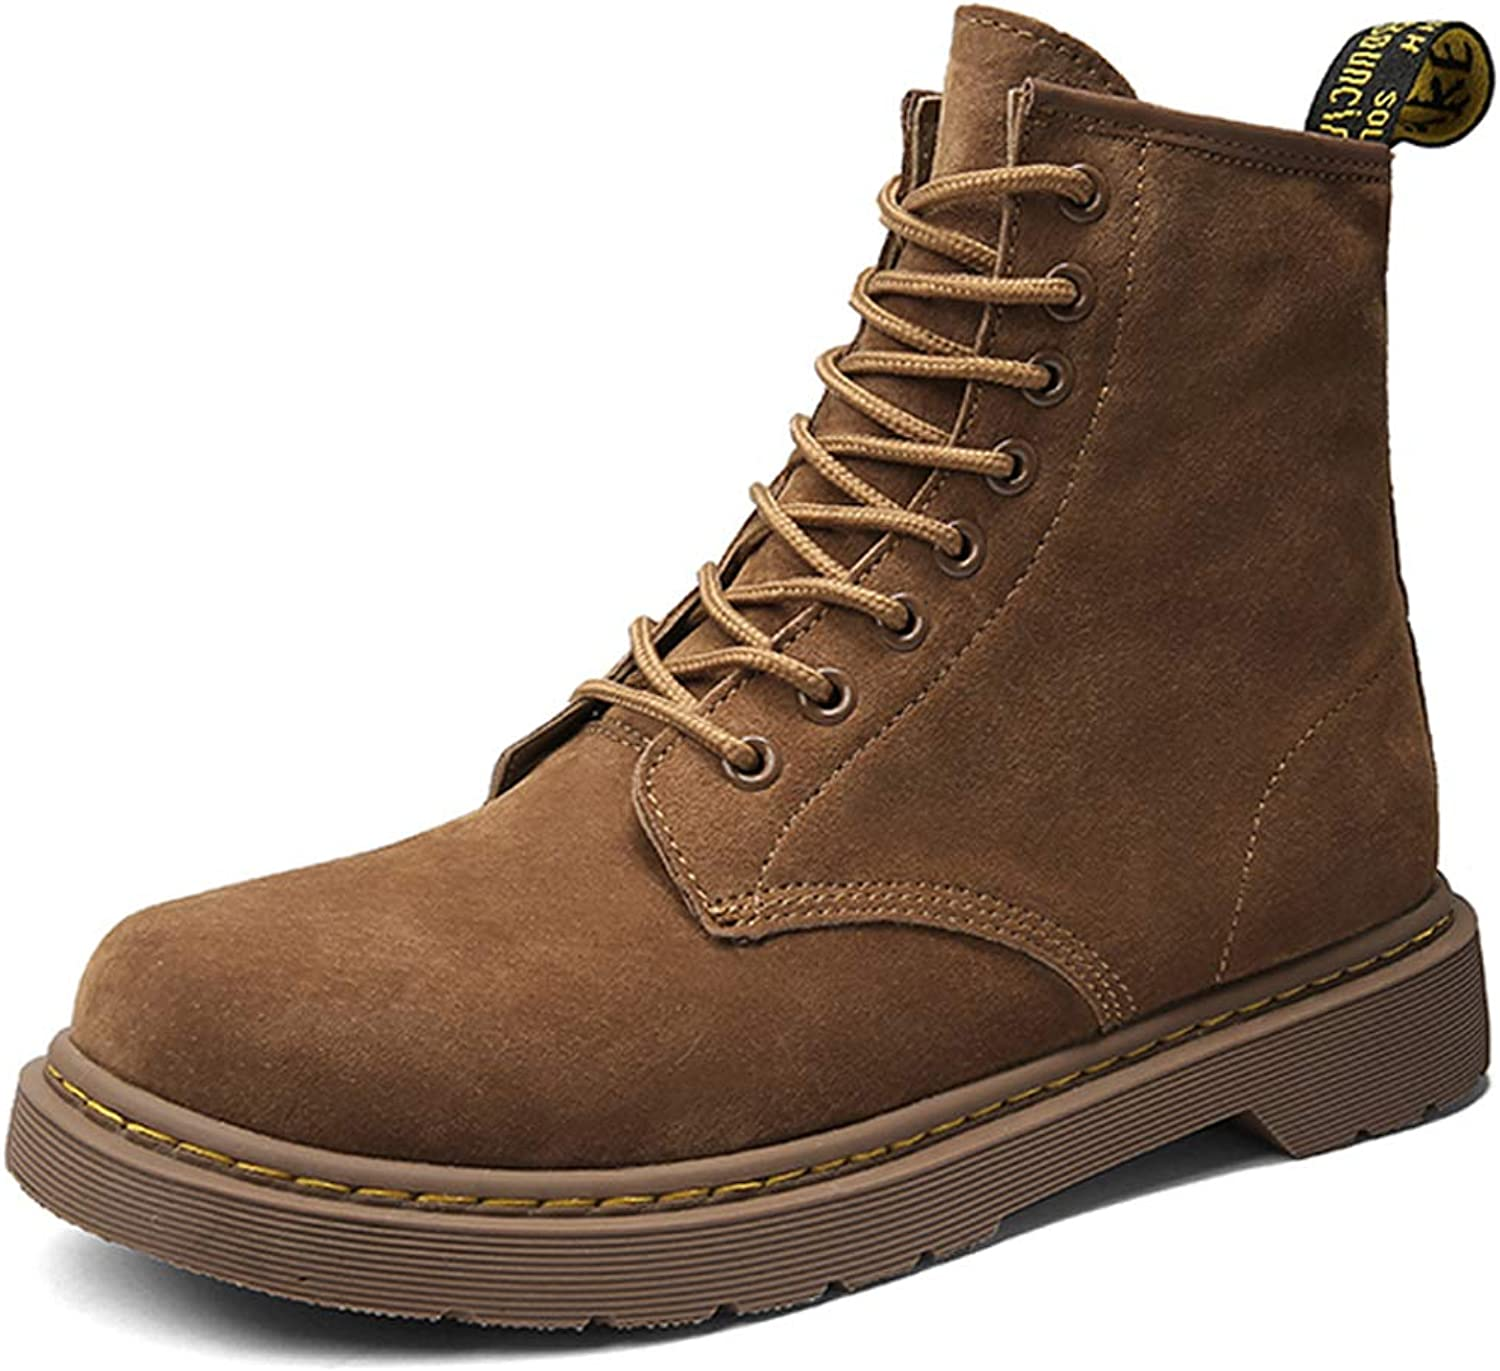 Mens Work Boots High Top Lace-Up Waterproof Martin M Baltimore Mall Branded goods